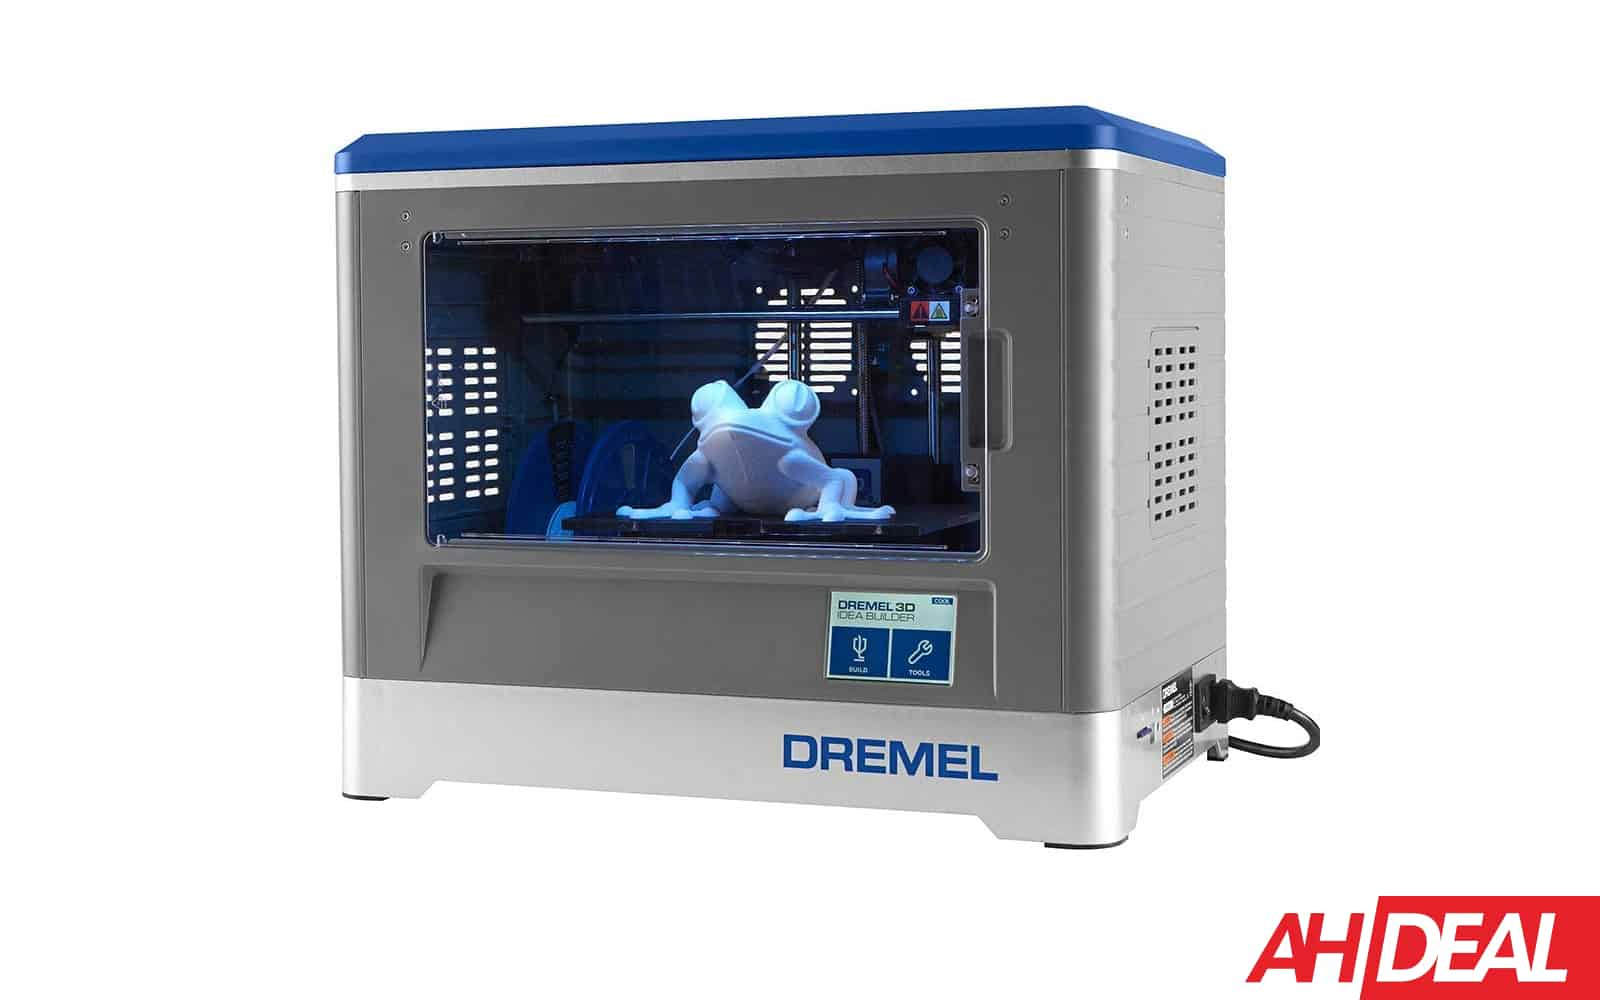 Dremel Digilab 3d20 3d Printer Now Only 419 Today Only Amazon Cyber Monday 2018 Deals